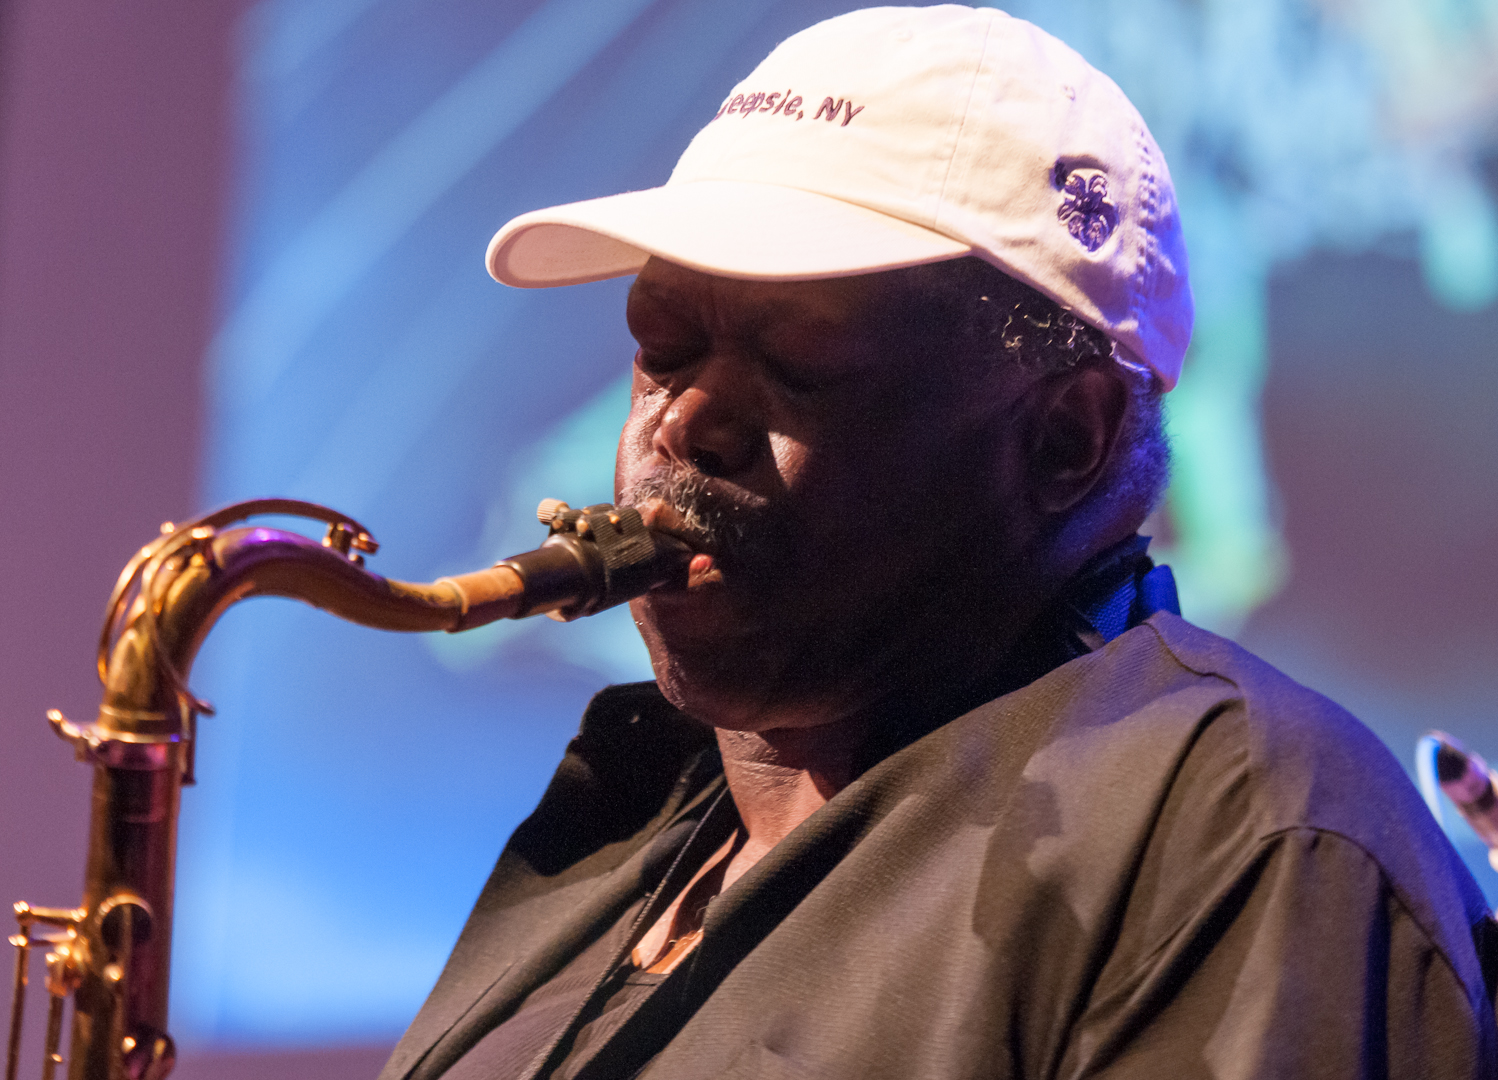 Joe McPhee with Angels, Devils and Haints II at the Vision Festival